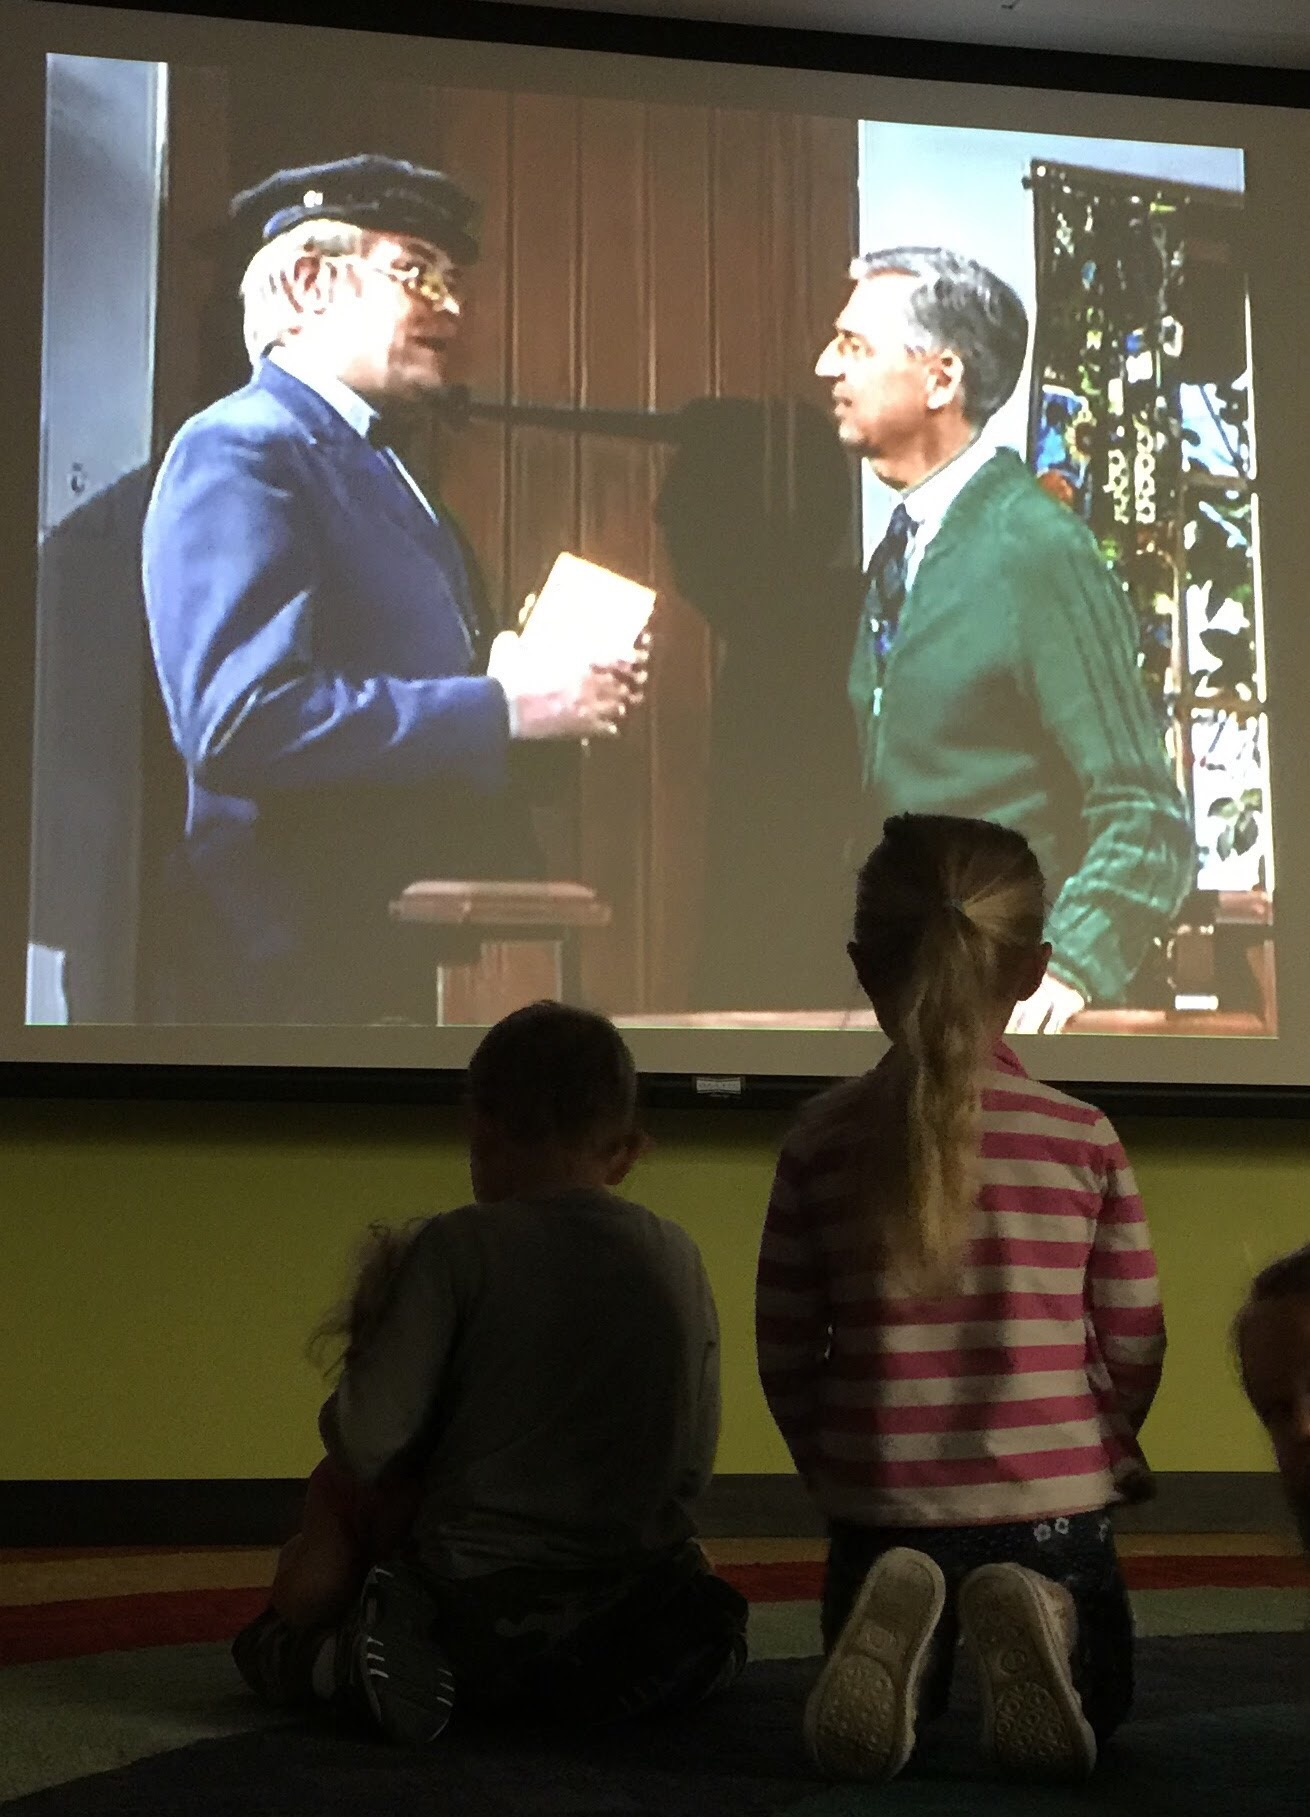 Won T You Be My Neighbor Or Mister Rogers Neighborhood As A Library Program Pt 1 Whys Wherefores Storytiming